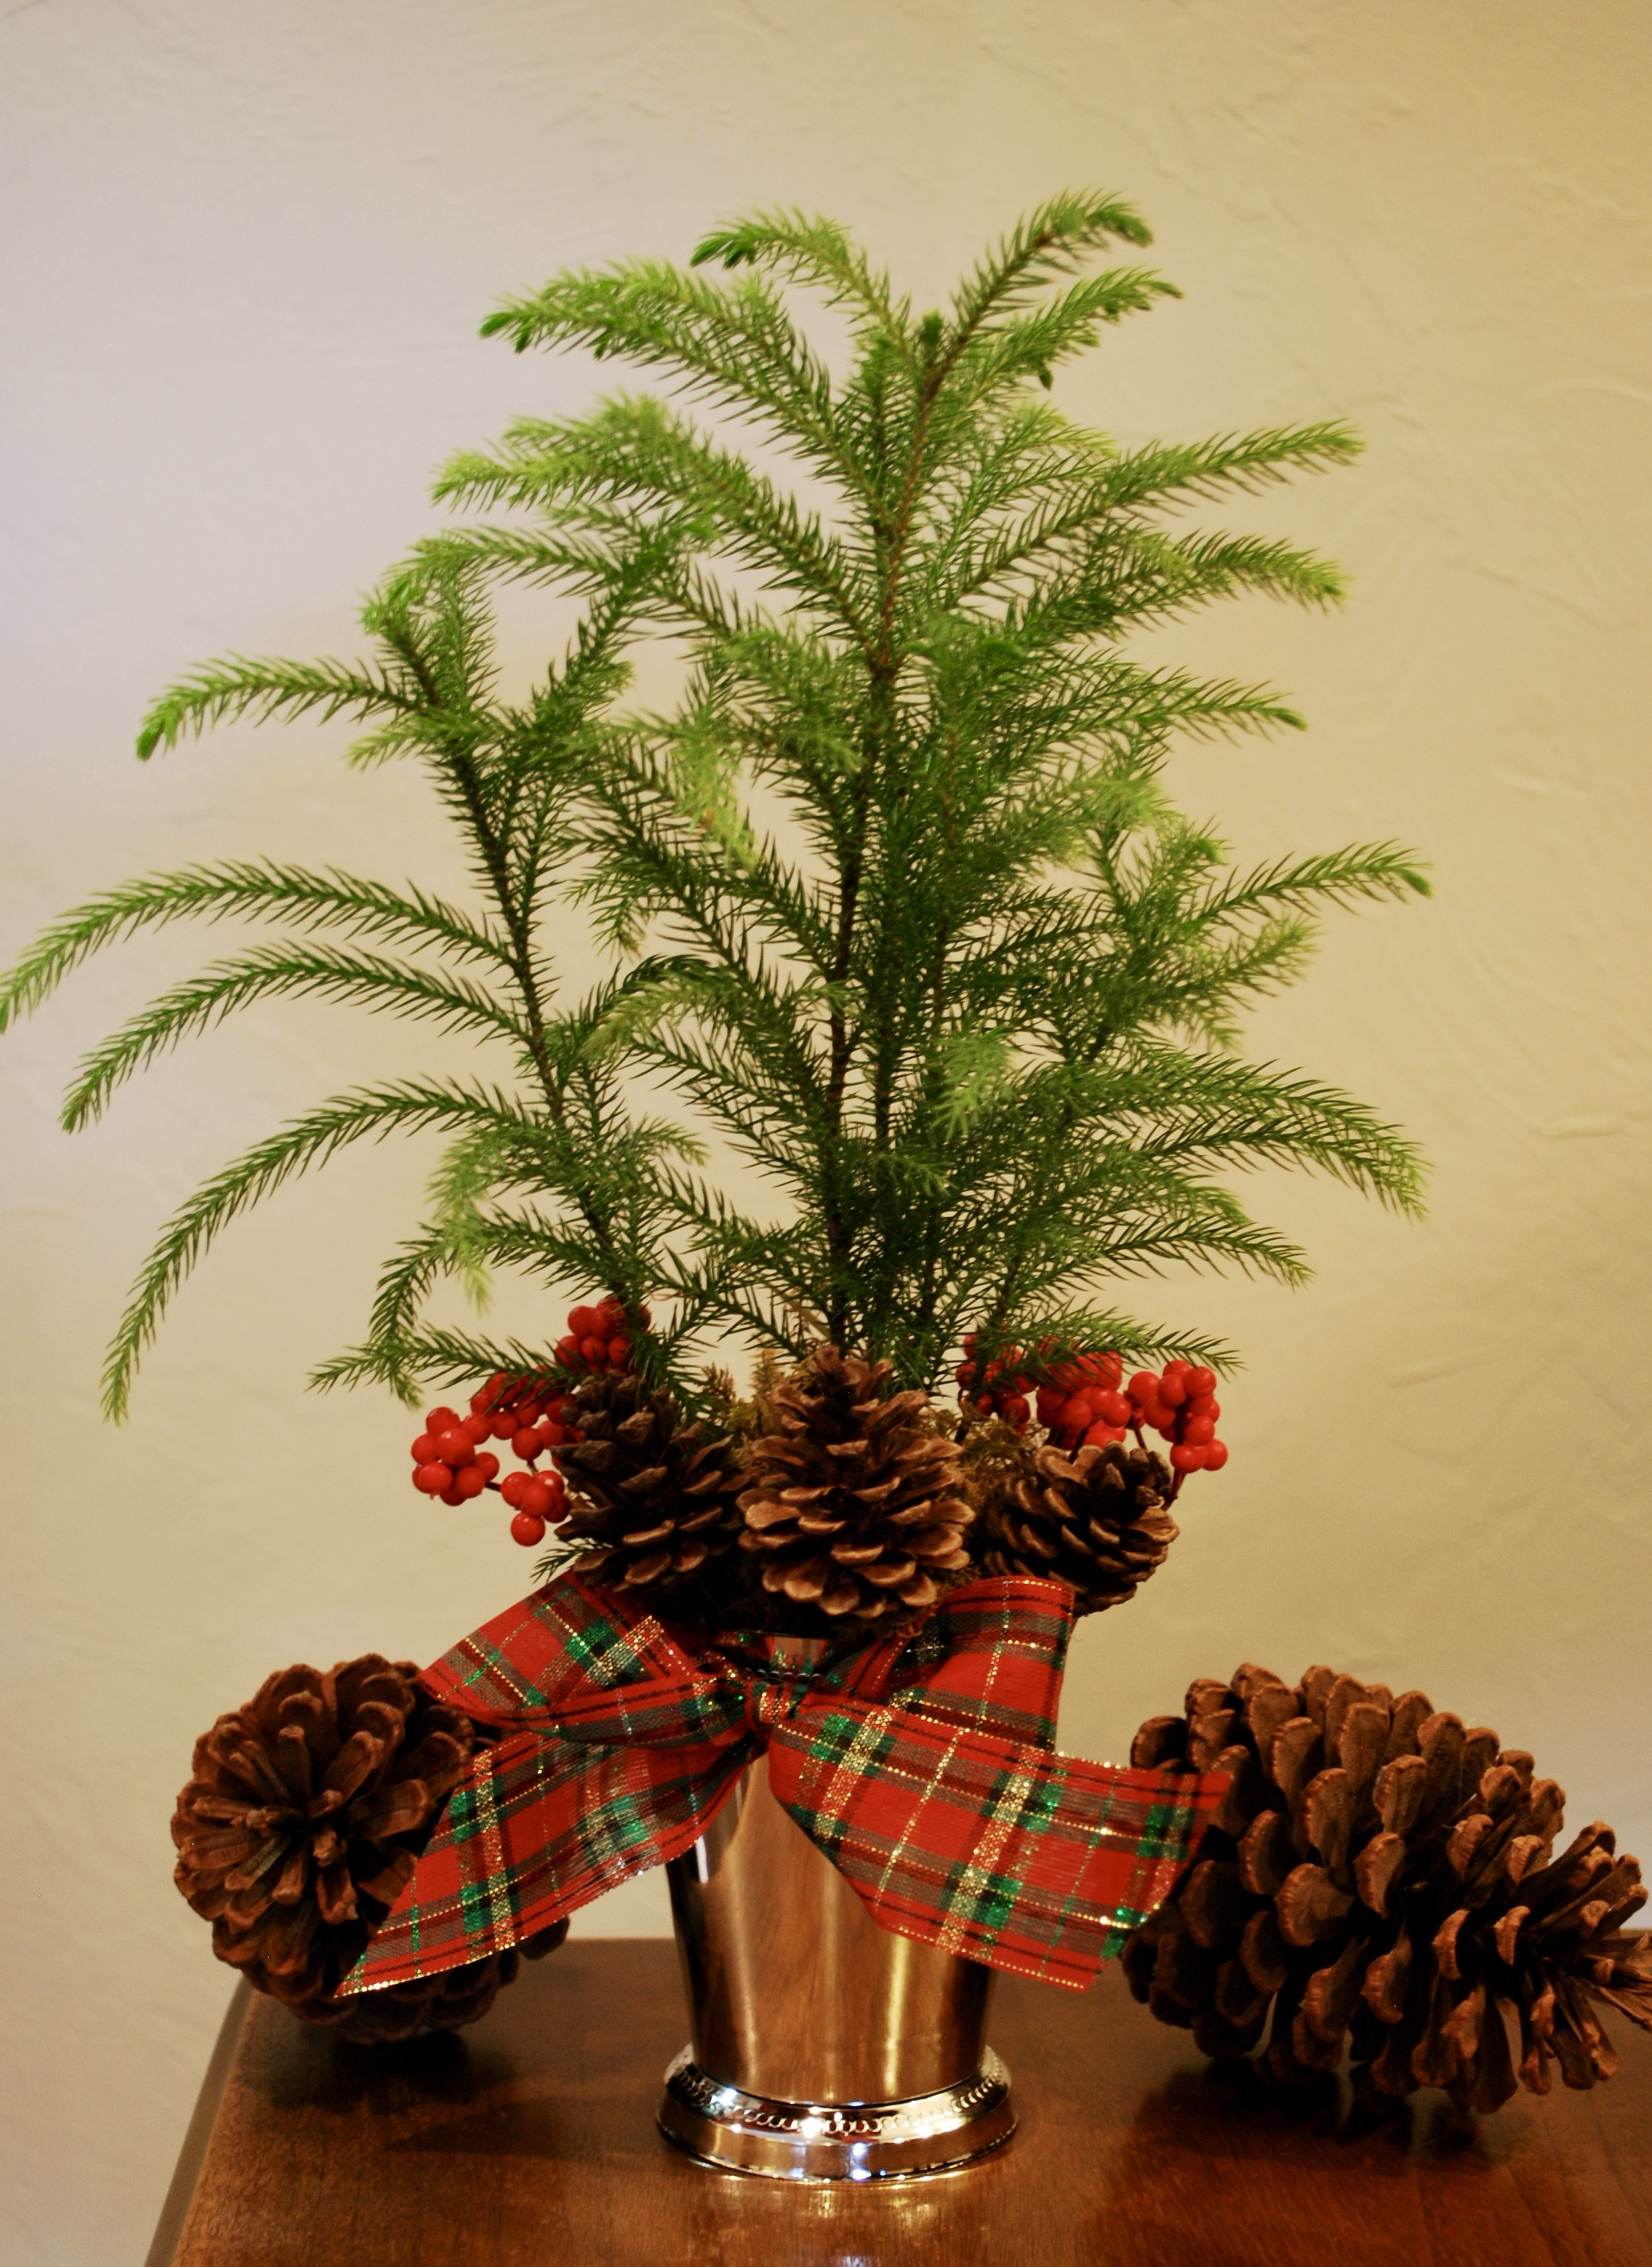 """Cute holiday gifts   If you are looking for a unique hostess gift or teacher gift do we have something for YOU! How cute is this little norfolk pine all dressed up for the holidays in a """"silver"""" mint julep cup?!?! It's the perfect seasonal touch near a kitchen sink or in a powder room and we are quite sure you need one or two or three. Give us a shout if we can pot one up for you. $15 /each."""